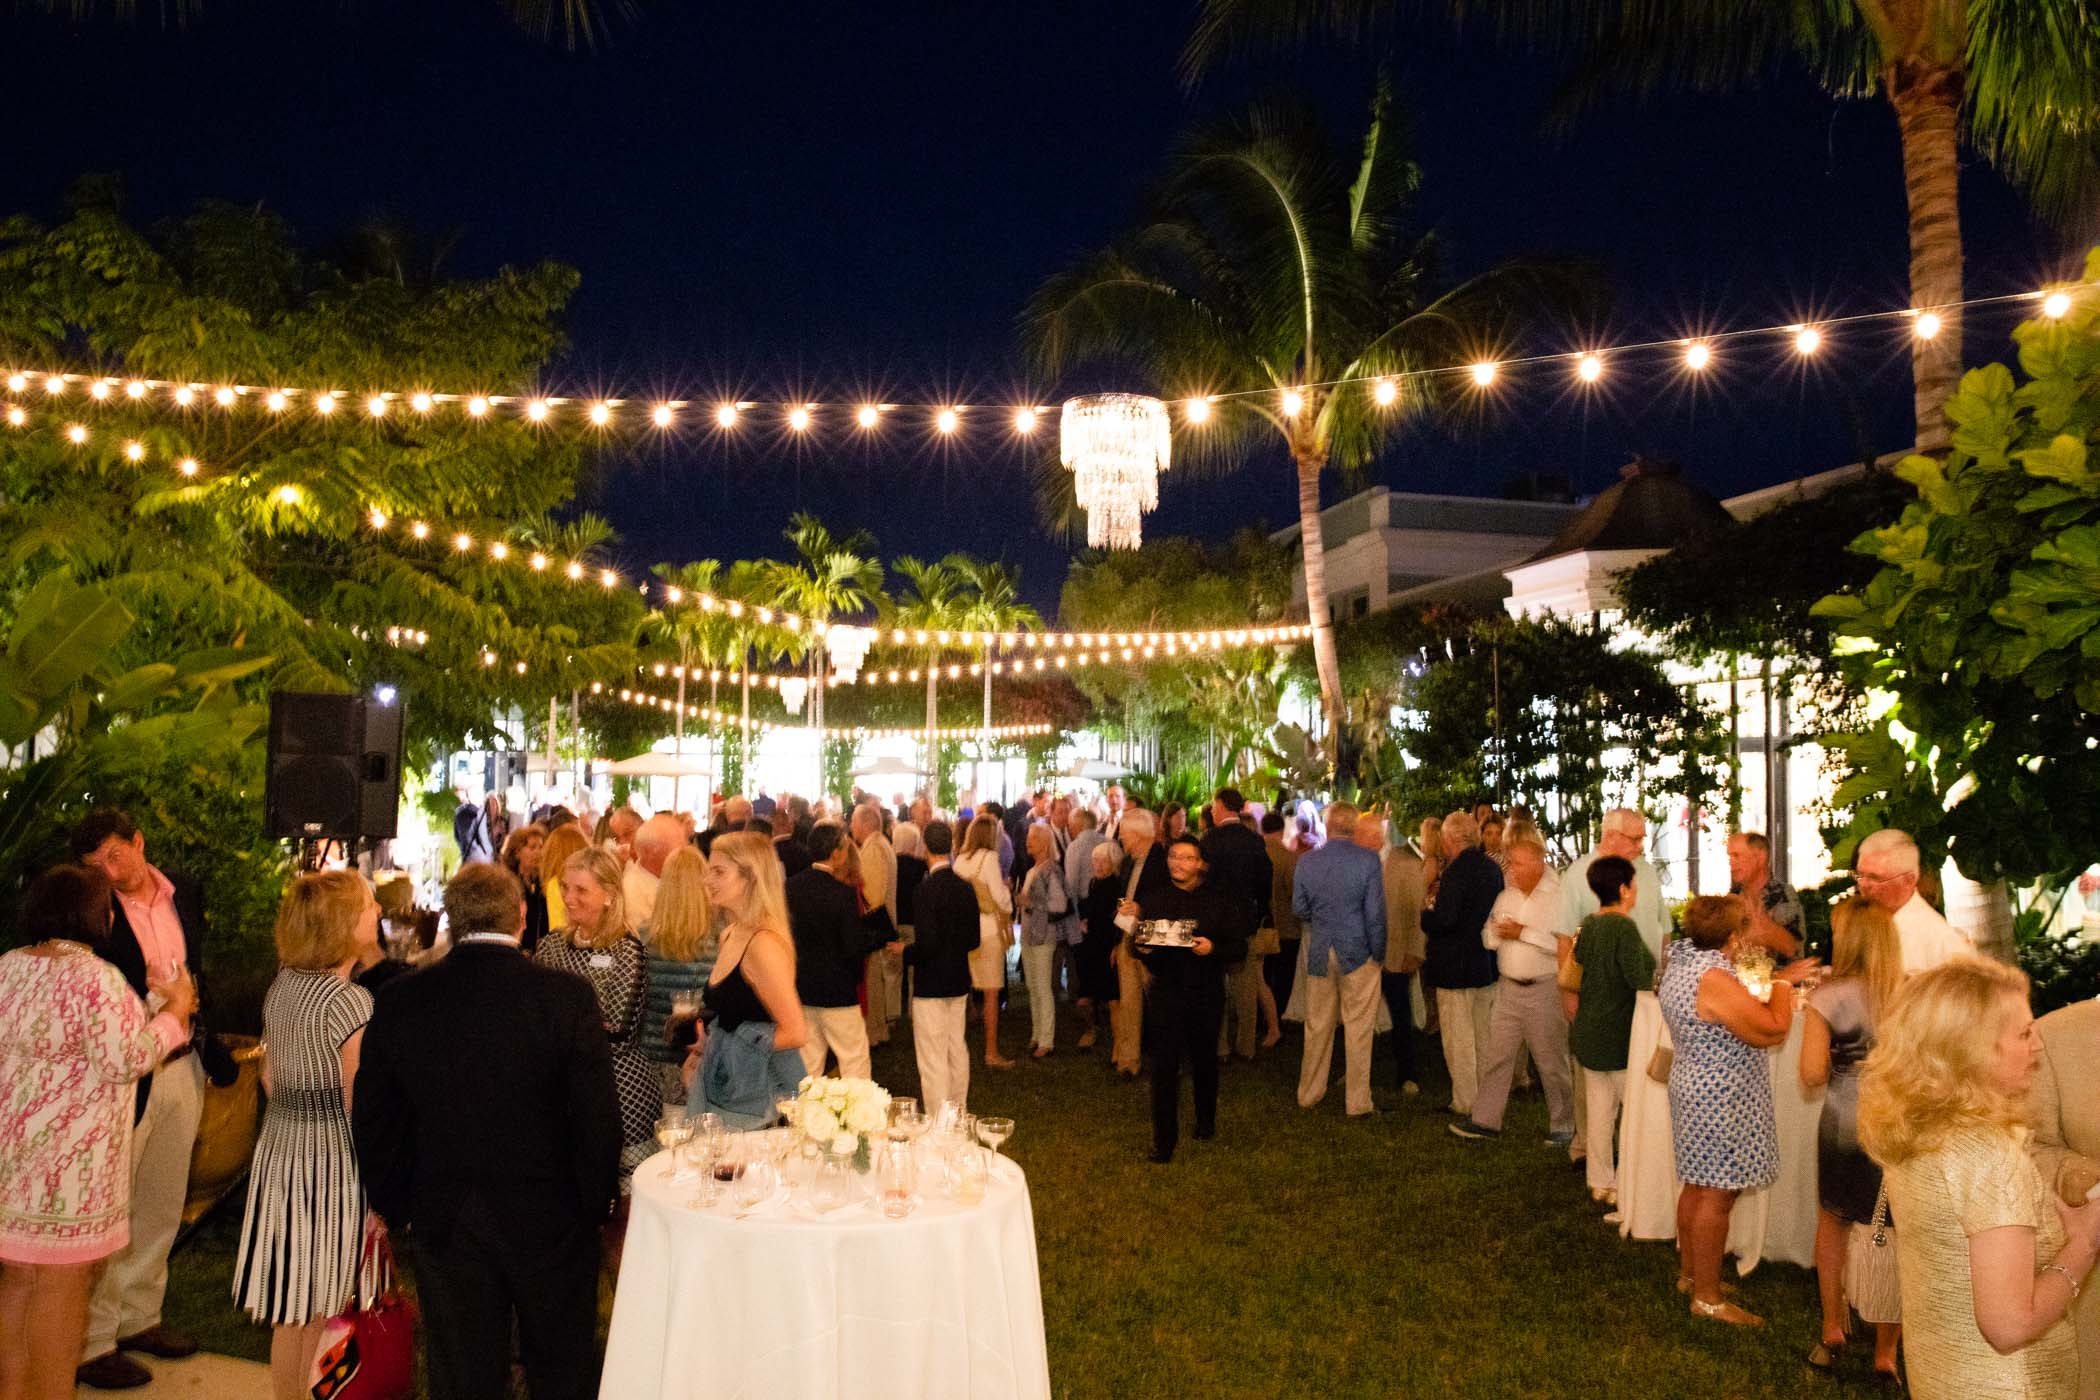 The 75th Anniversary of the Palm Beach Civic Association at the Royal Ponciana in Palm Beach Florida November 26, 2018 with Live Painting by Lydia Marie Elizabeth in watercolor 6.jpg